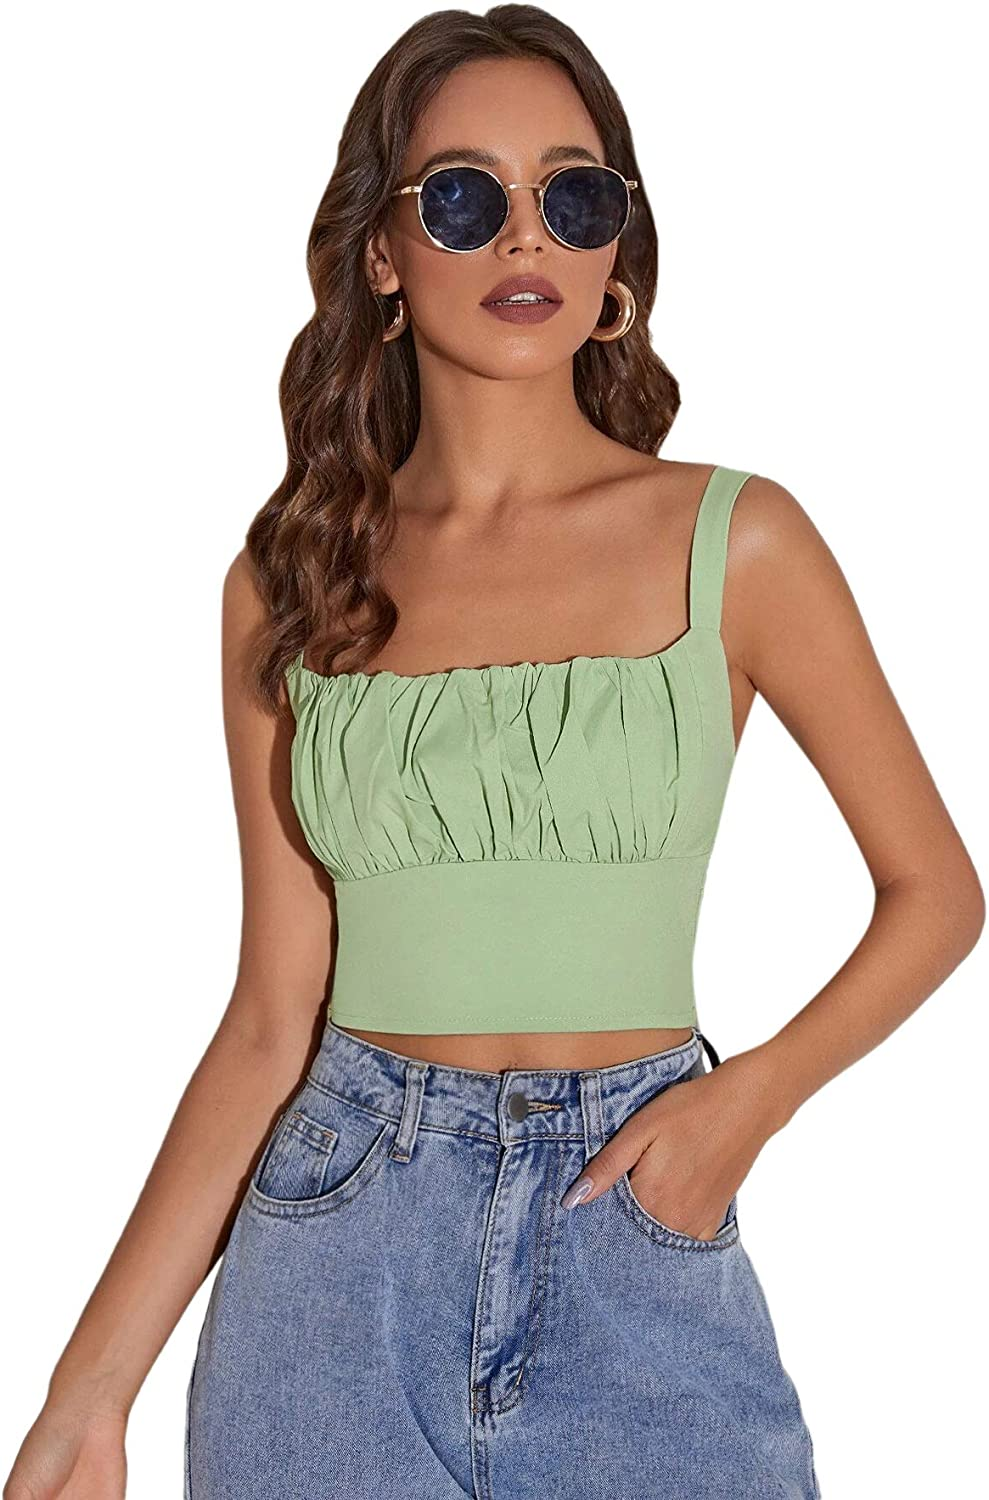 Romwe Women's Ruched Bust Sleeveless Square Neck Shirred Cami Crop Tops Camisole